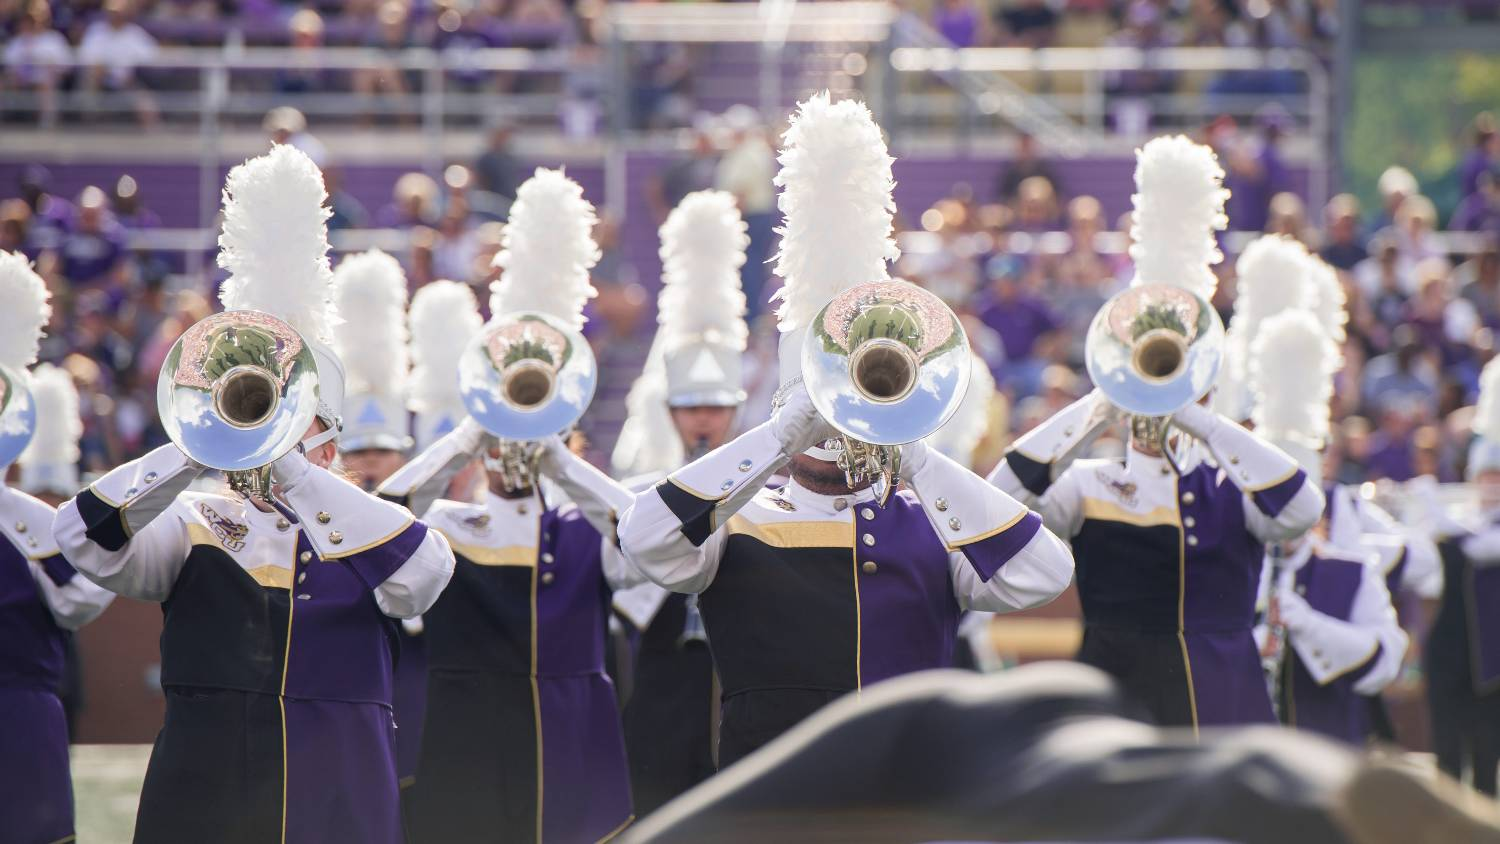 Whee Drum at Western Carolina University: Drumming Clinics for High School Students